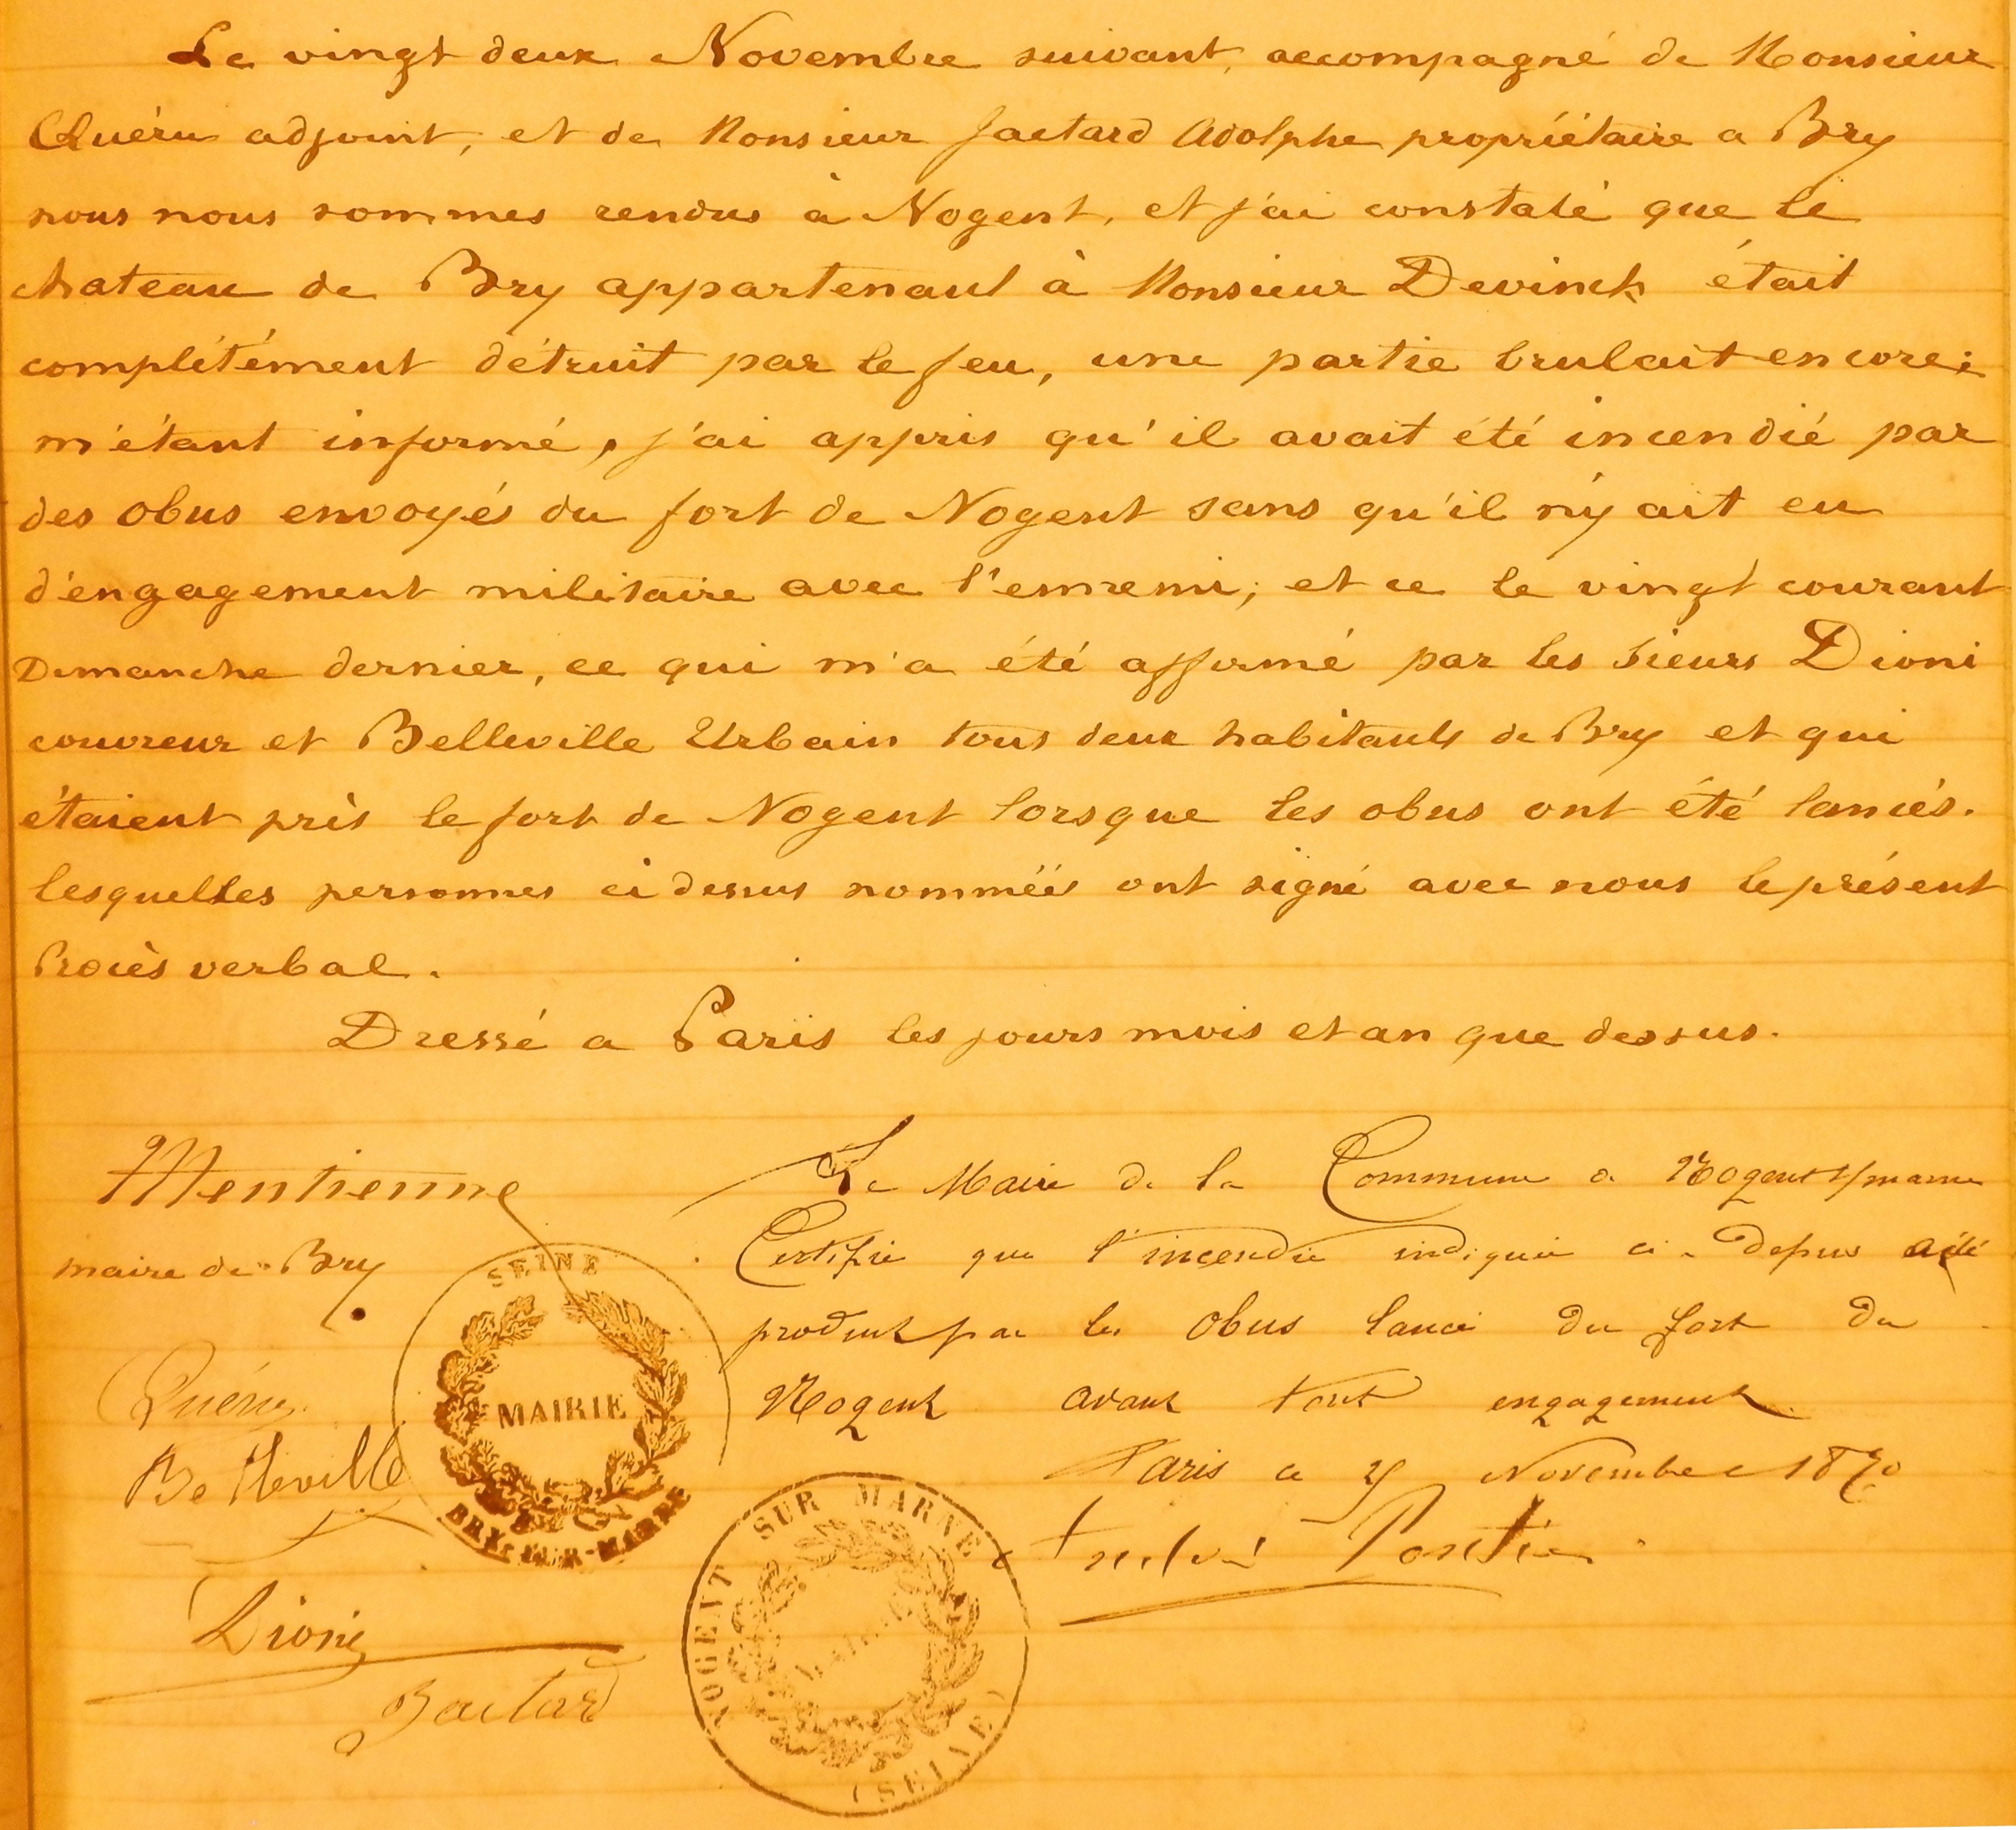 Document 2 (12 novembre 1870).